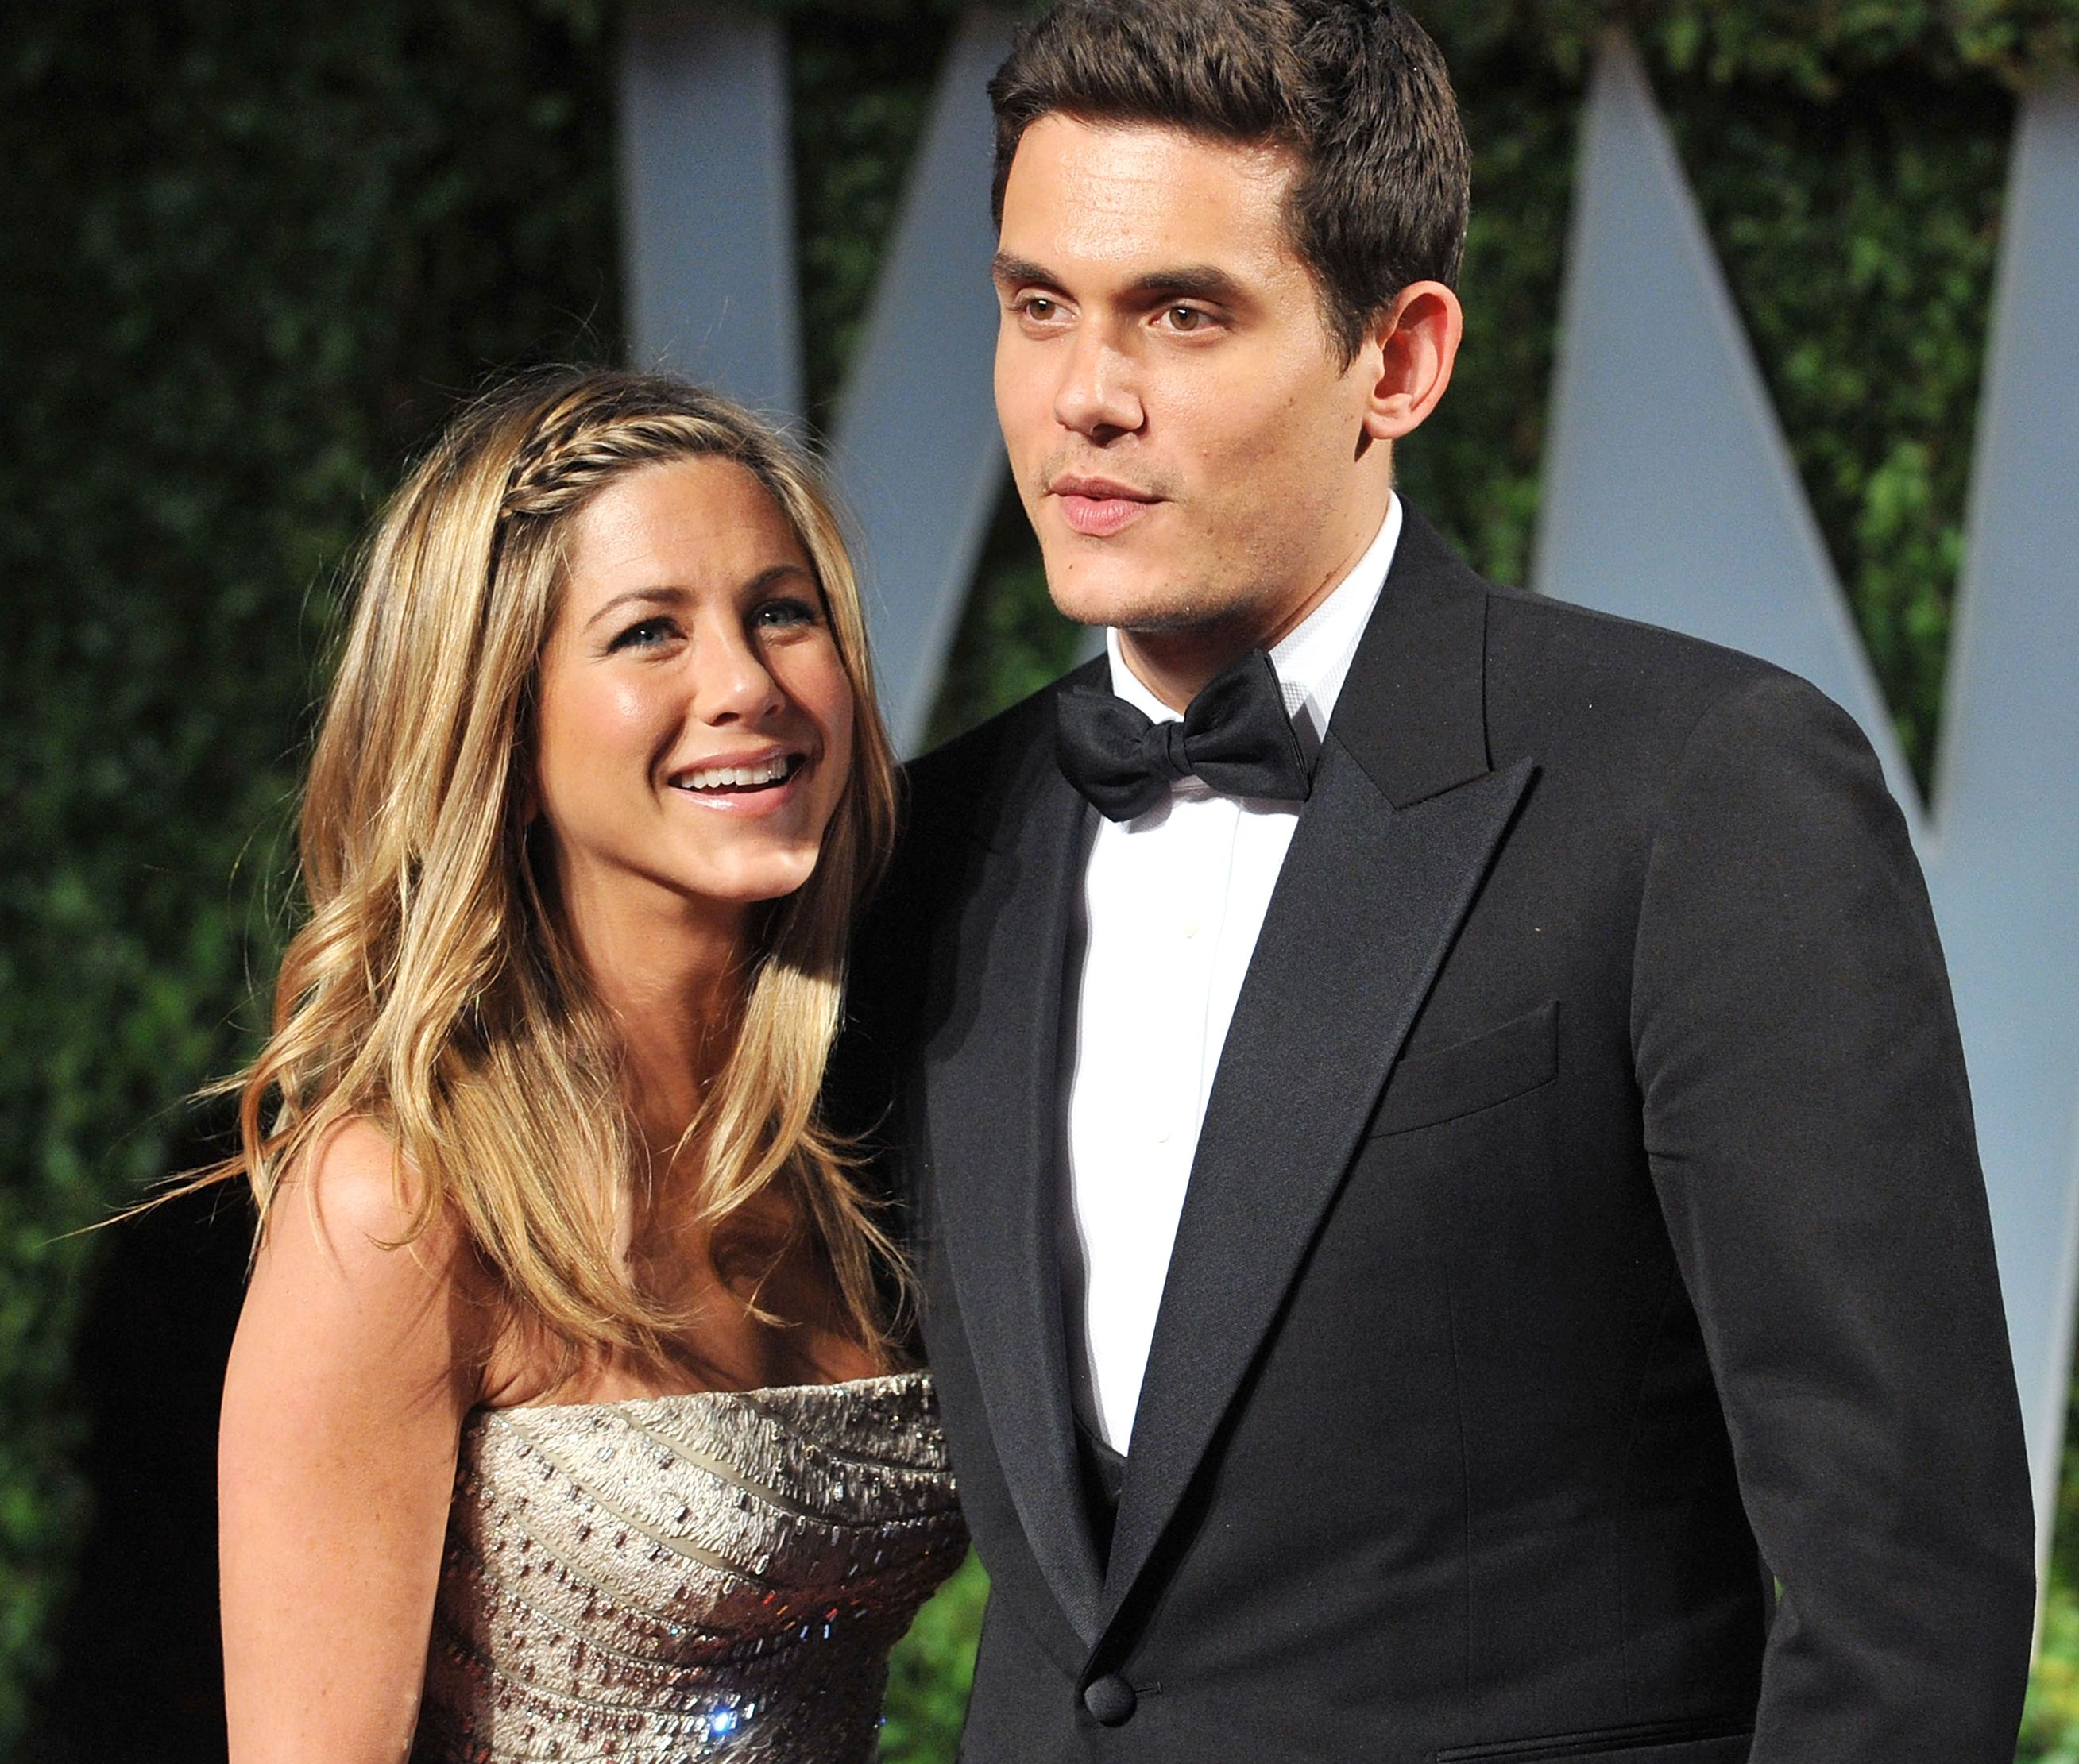 Jennifer Aniston's comments on the live of her ex-boyfriend, John Mayer, and if you have fun with that joke of a singer